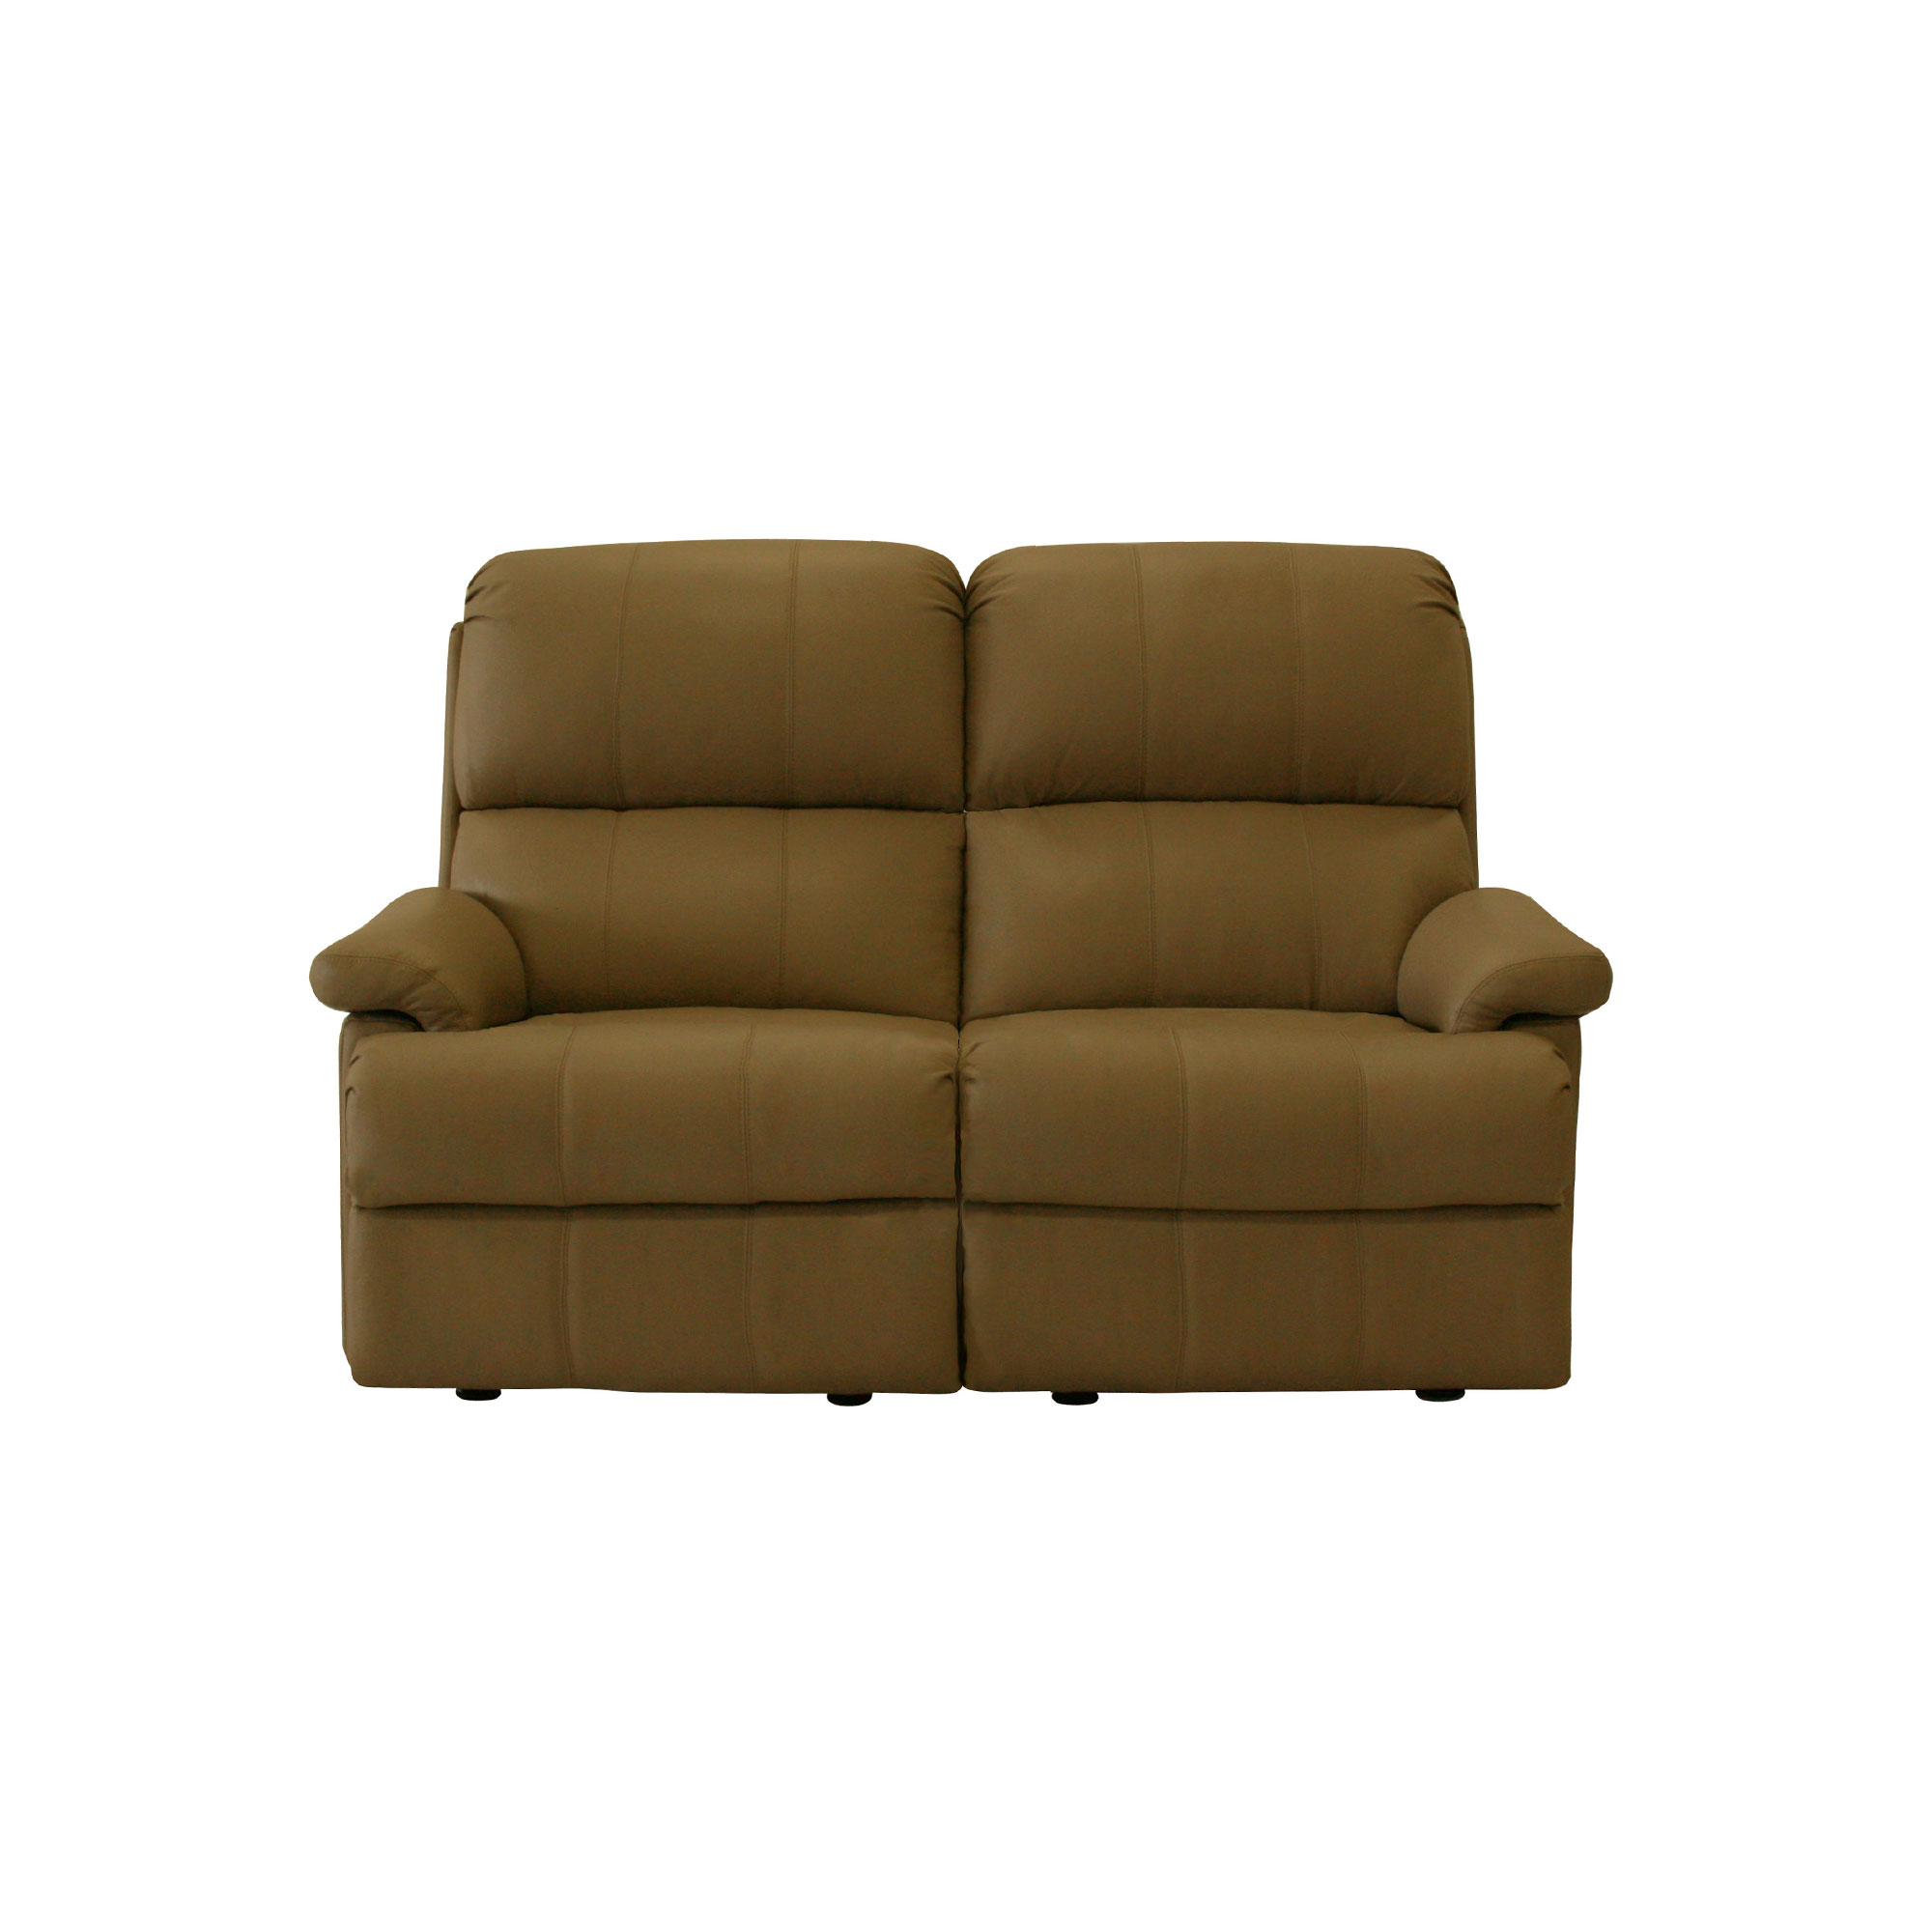 lightbox  sc 1 st  Moran Furniture & Cloud Recliner - Moran Furniture islam-shia.org